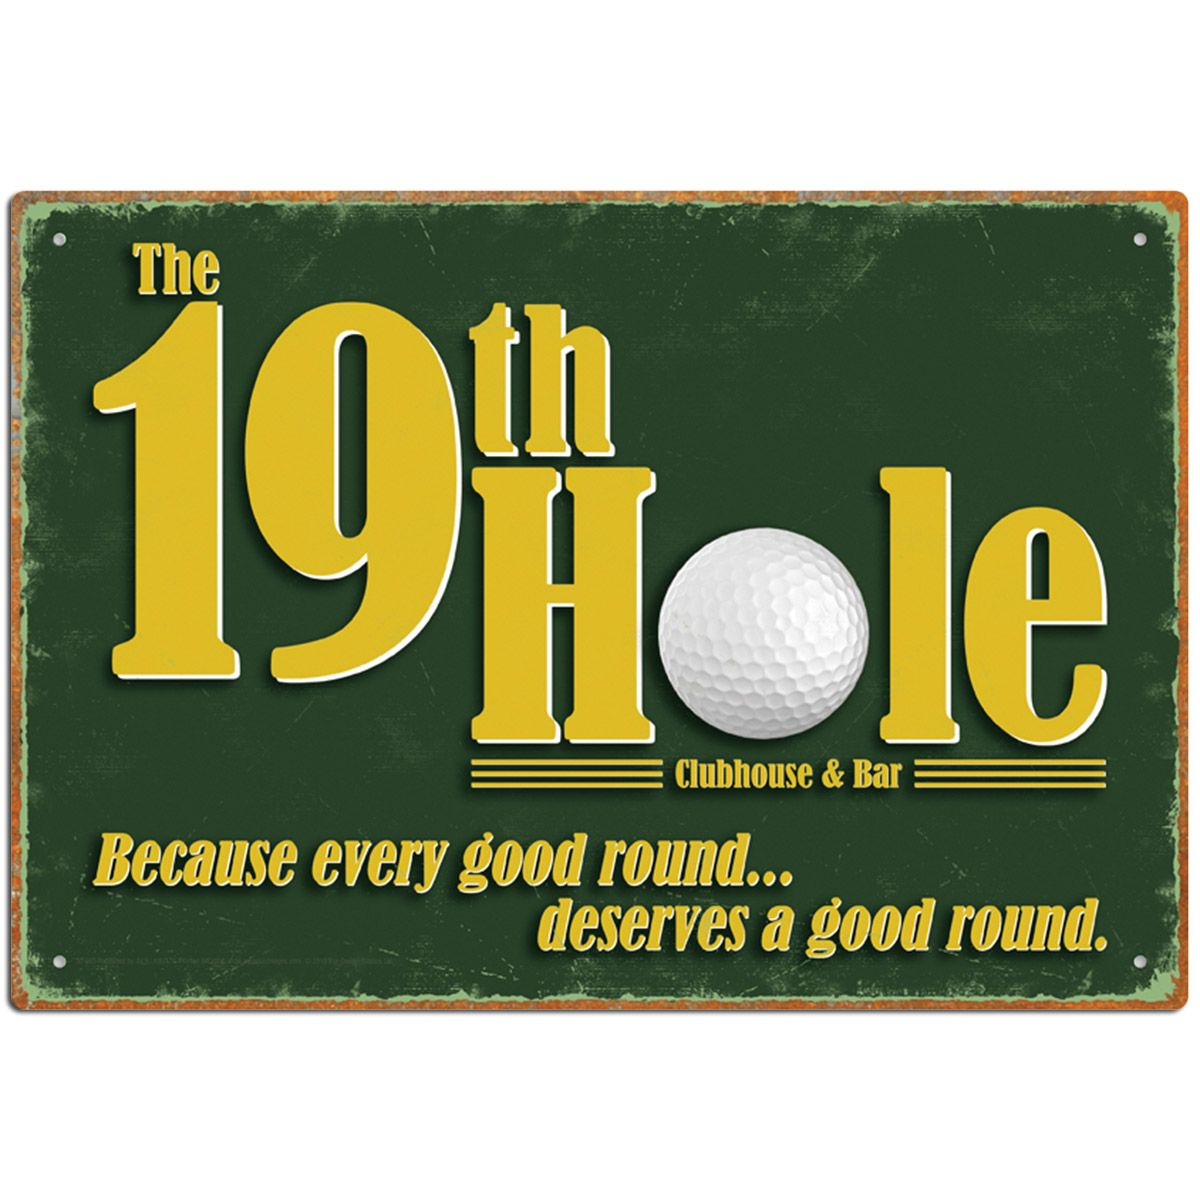 32th Hole Golf Restaurant and Bar Metal Sign   32th hole, Metal ...